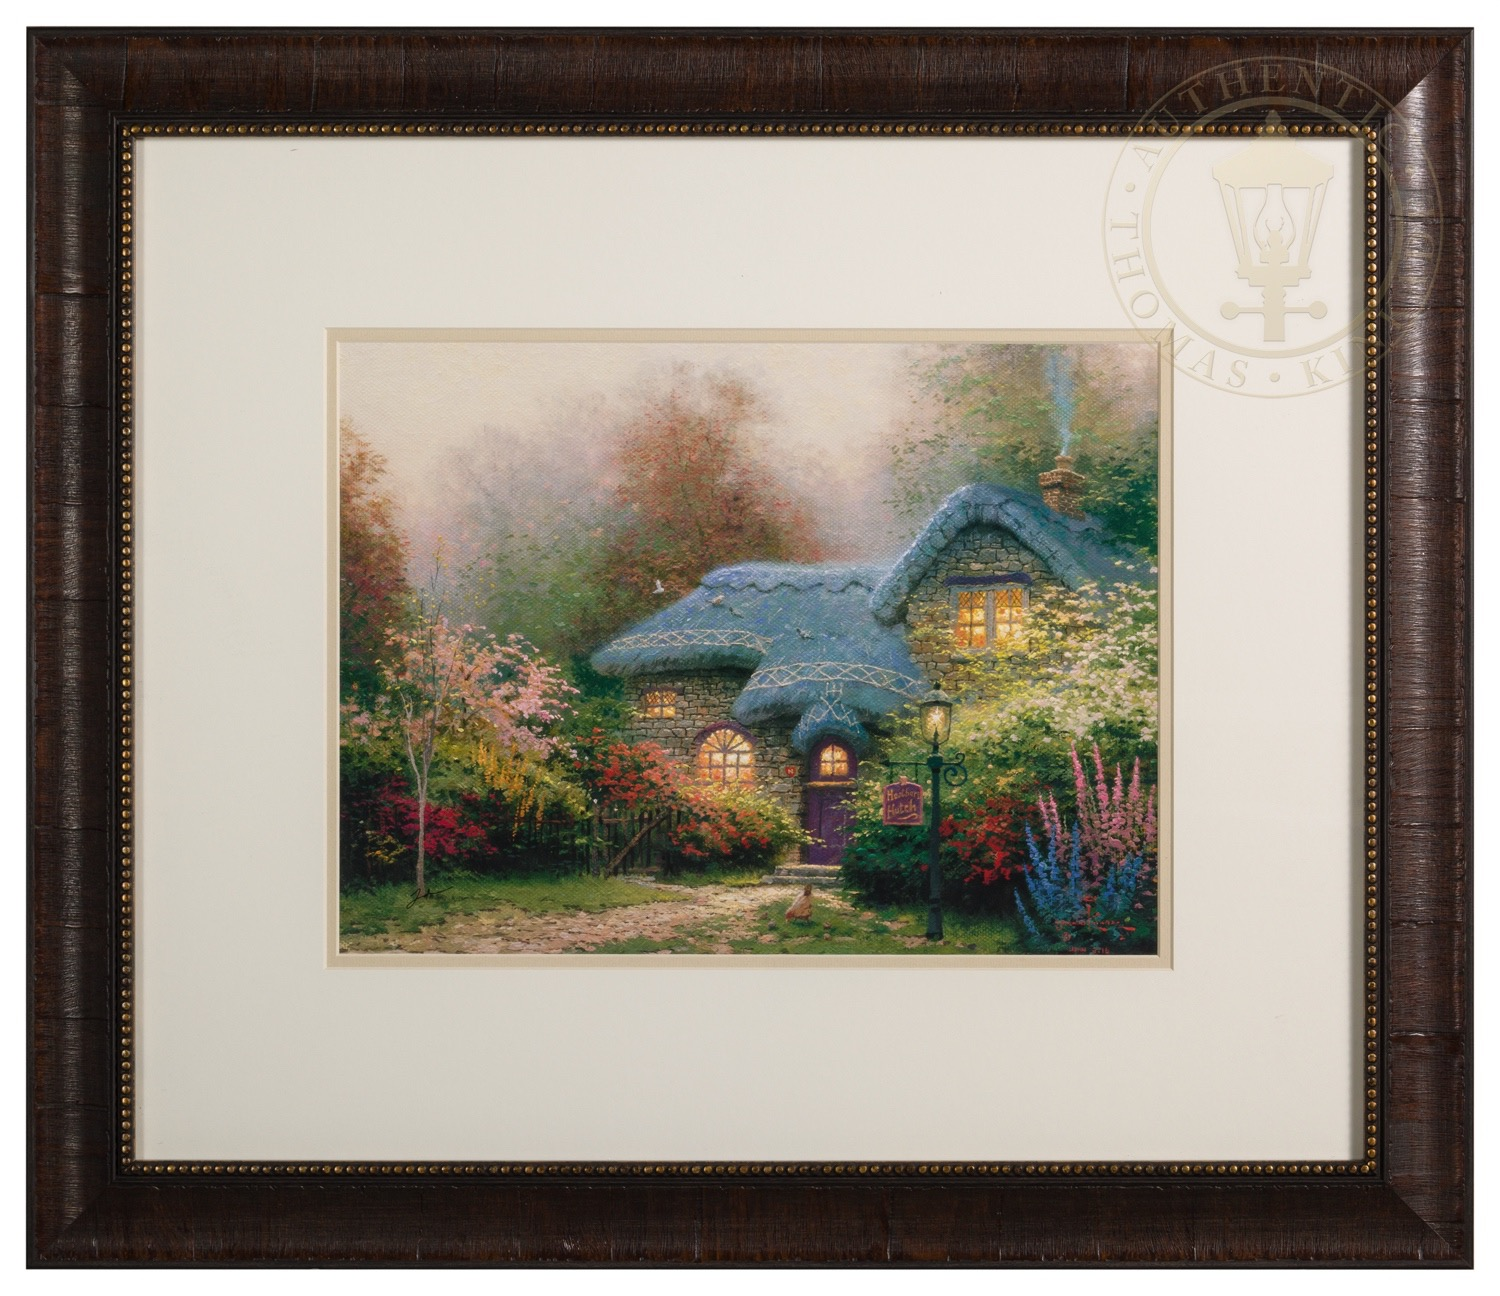 Heather\'s Hutch – Framed Matted Print Signed by Thomas Kinkade | The ...